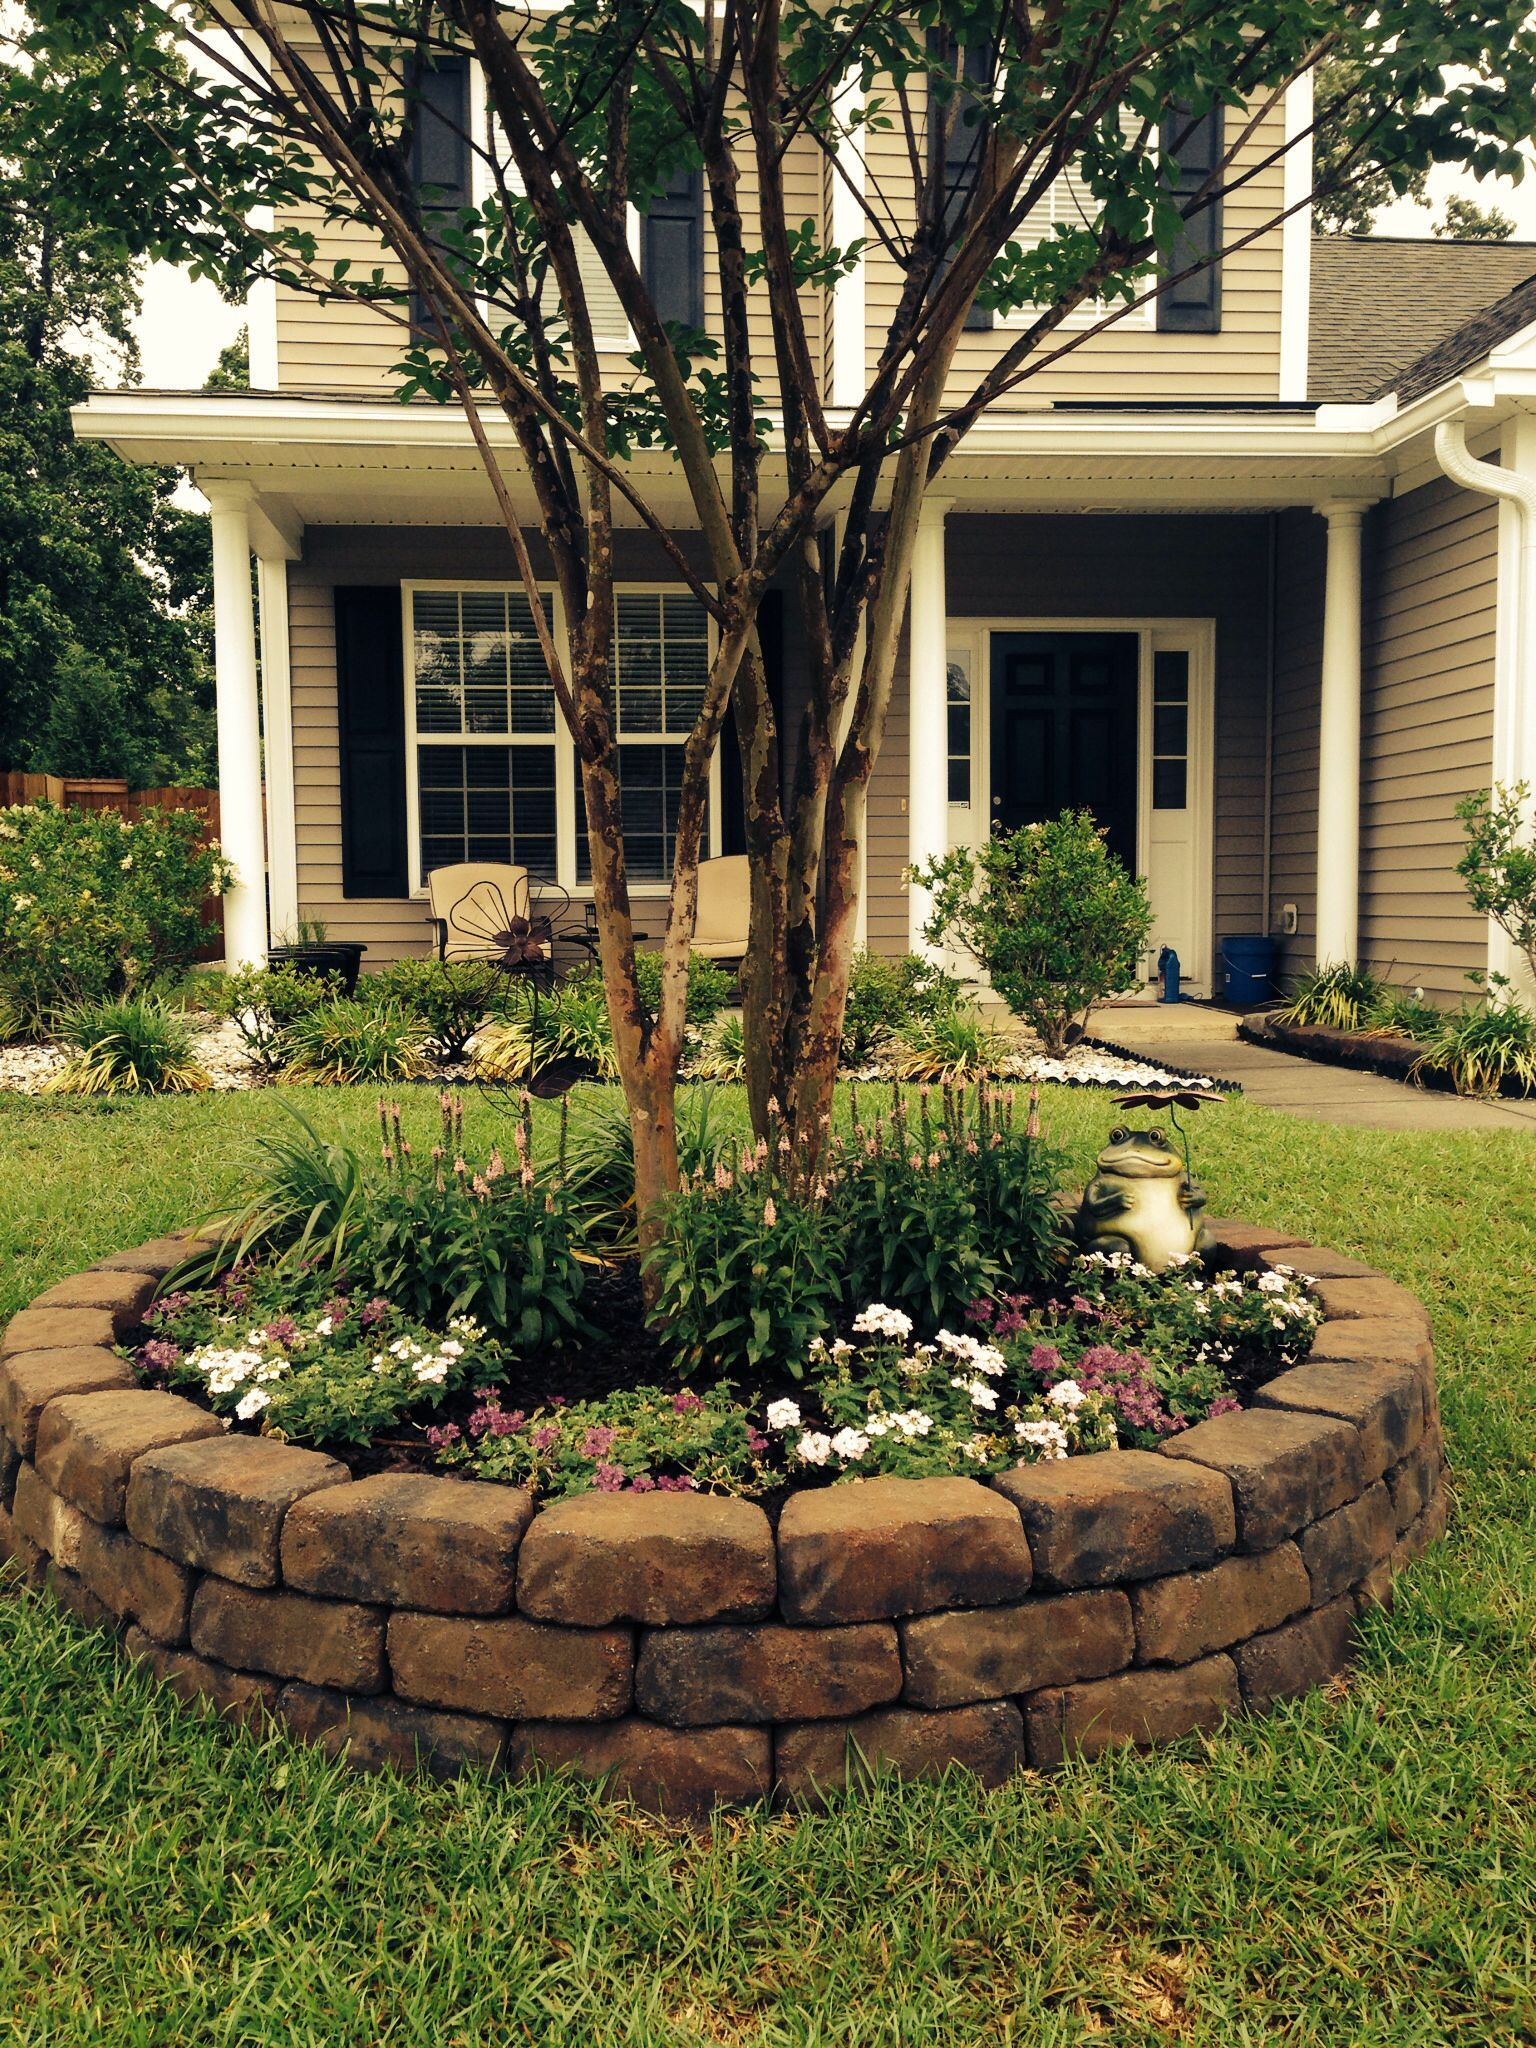 10 Unique Ideas Of How To Build Backyard Tree Landscaping Simphome Cheap Landscaping Ideas Small Front Yard Landscaping Home Landscaping